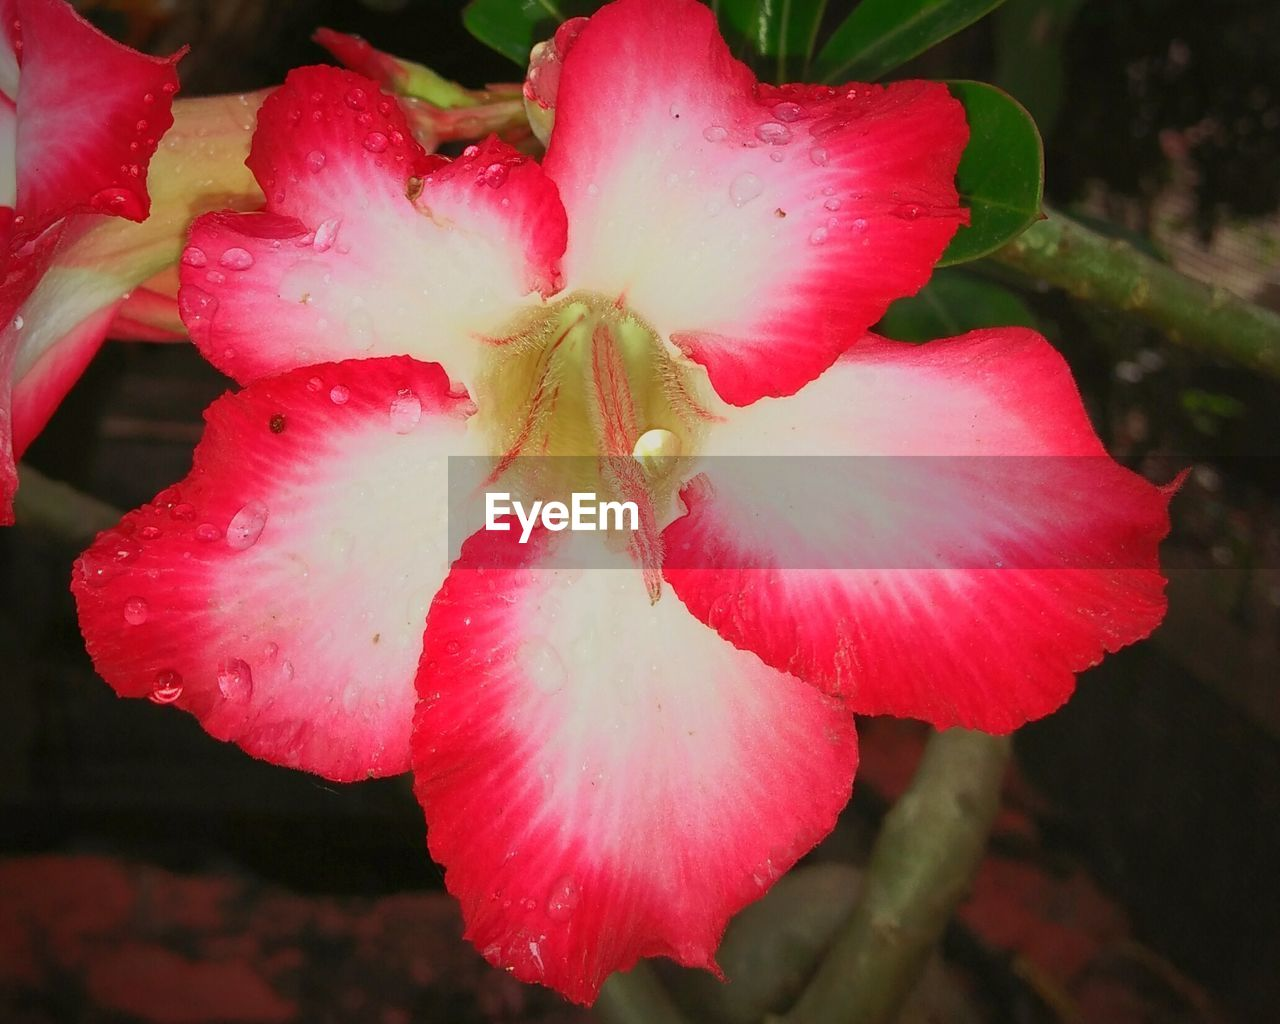 flower, petal, fragility, beauty in nature, growth, flower head, nature, freshness, pink color, outdoors, close-up, stamen, red, no people, day, wet, drop, plant, springtime, water, blooming, day lily